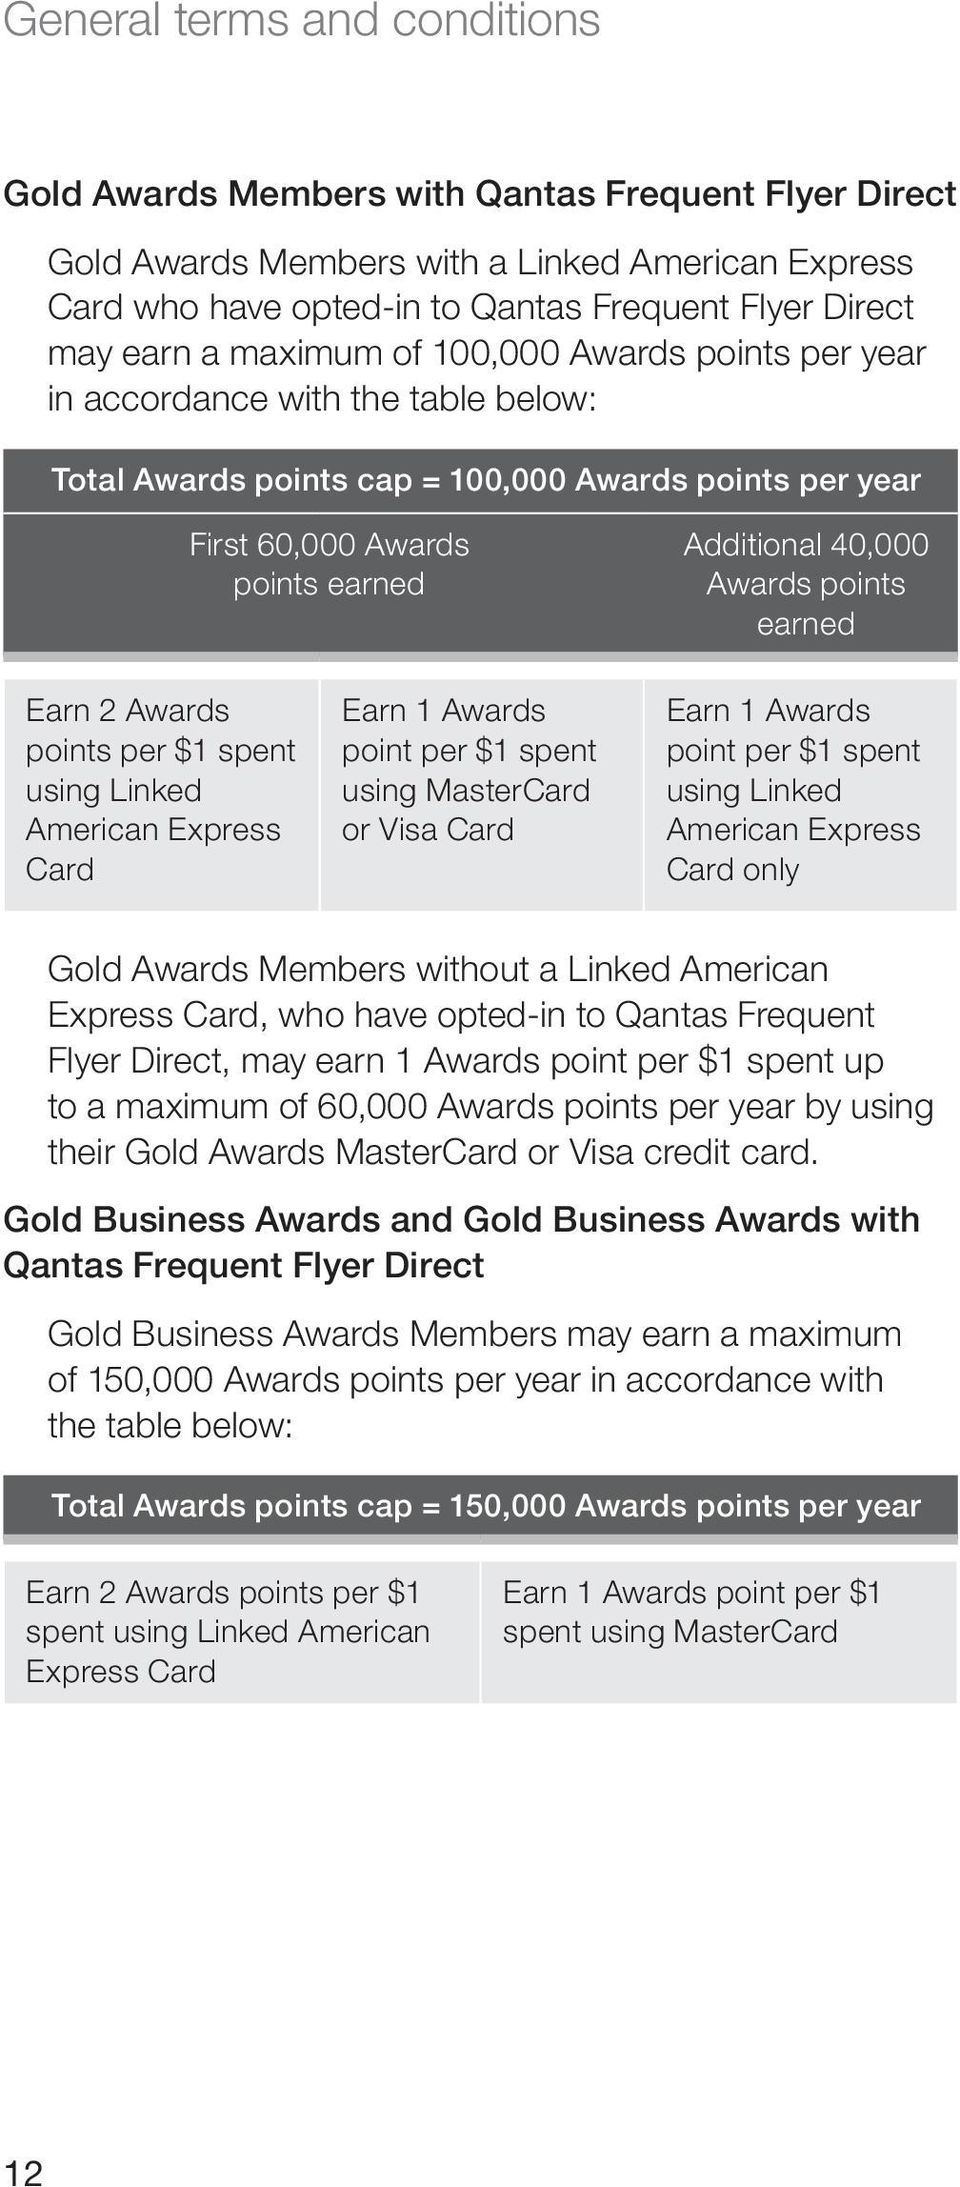 points earned Earn 2 Awards points per $1 spent using Linked American Express Card Earn 1 Awards point per $1 spent using MasterCard or Visa Card Earn 1 Awards point per $1 spent using Linked